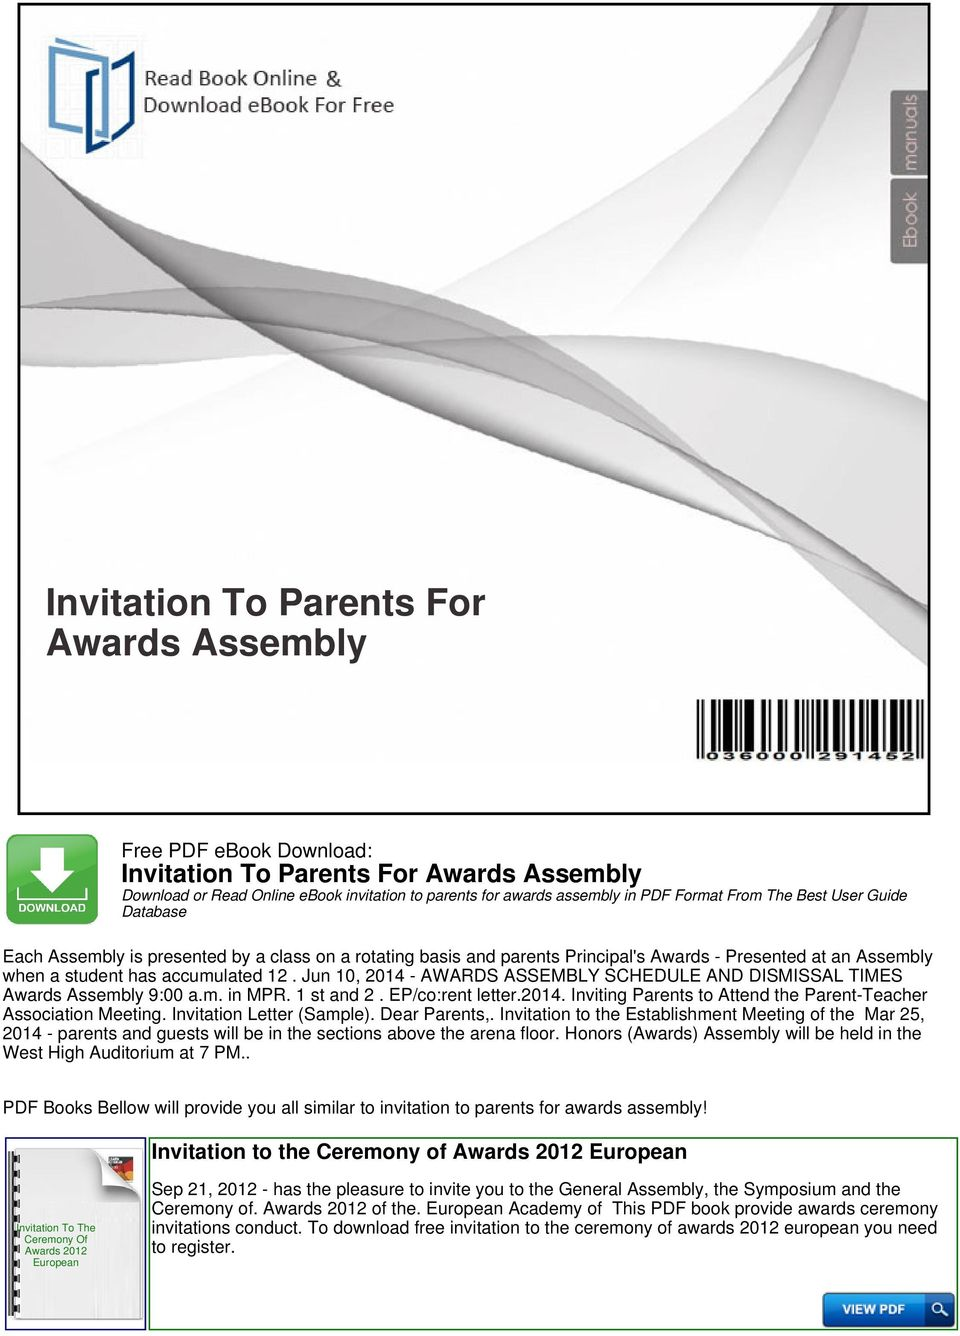 Invitation to parents for awards assembly pdf 1 st and 2 epcorent letter2014 inviting to stopboris Images